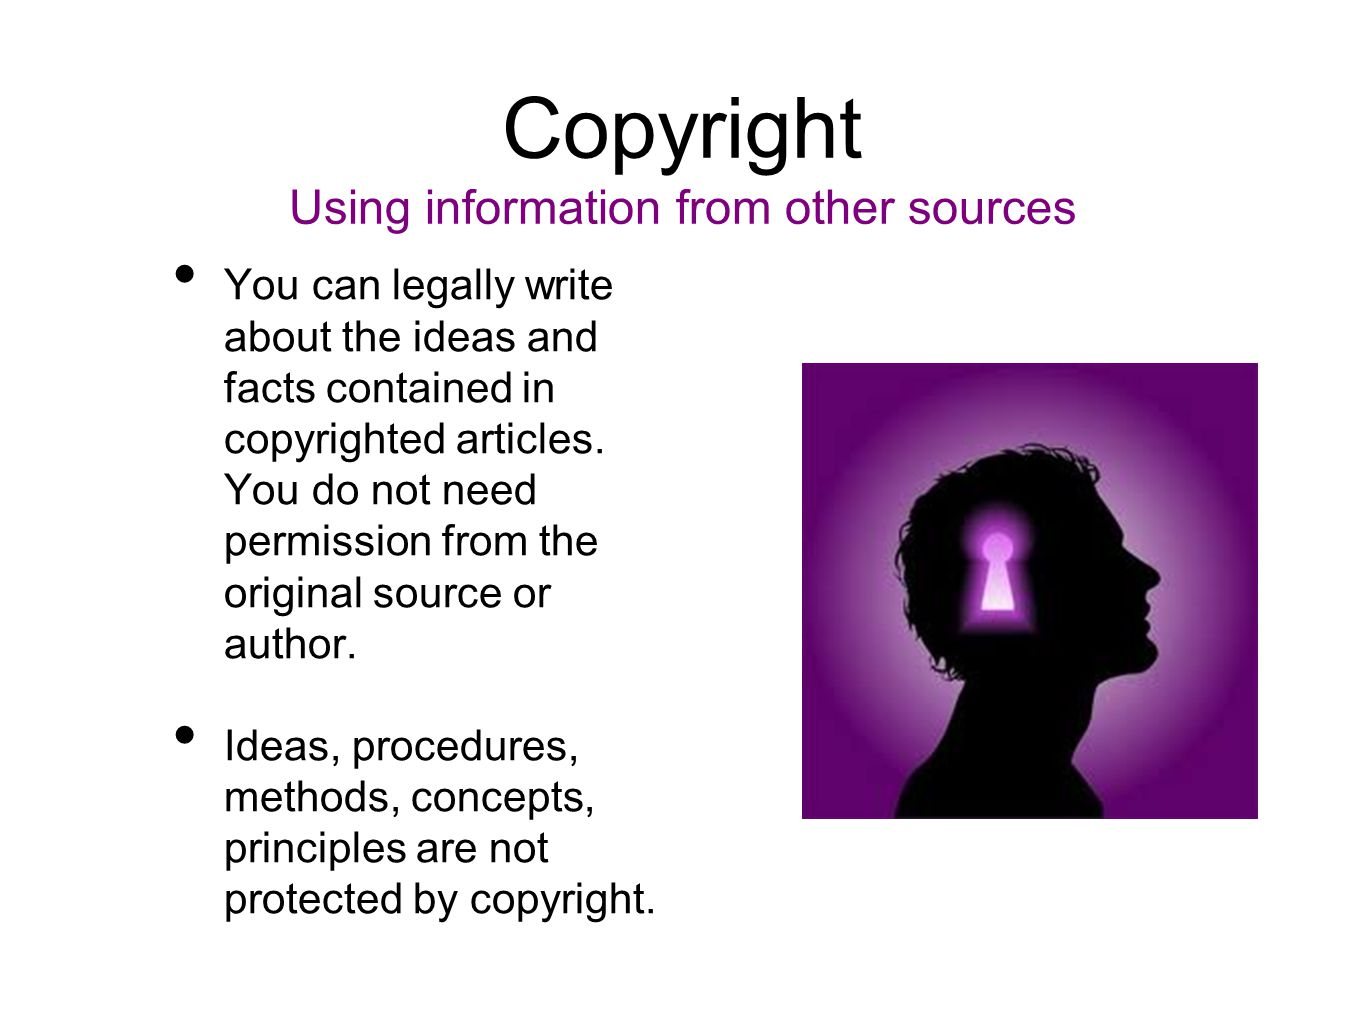 Copyright Using information from other sources You can legally write about the ideas and facts contained in copyrighted articles. You do not need perm